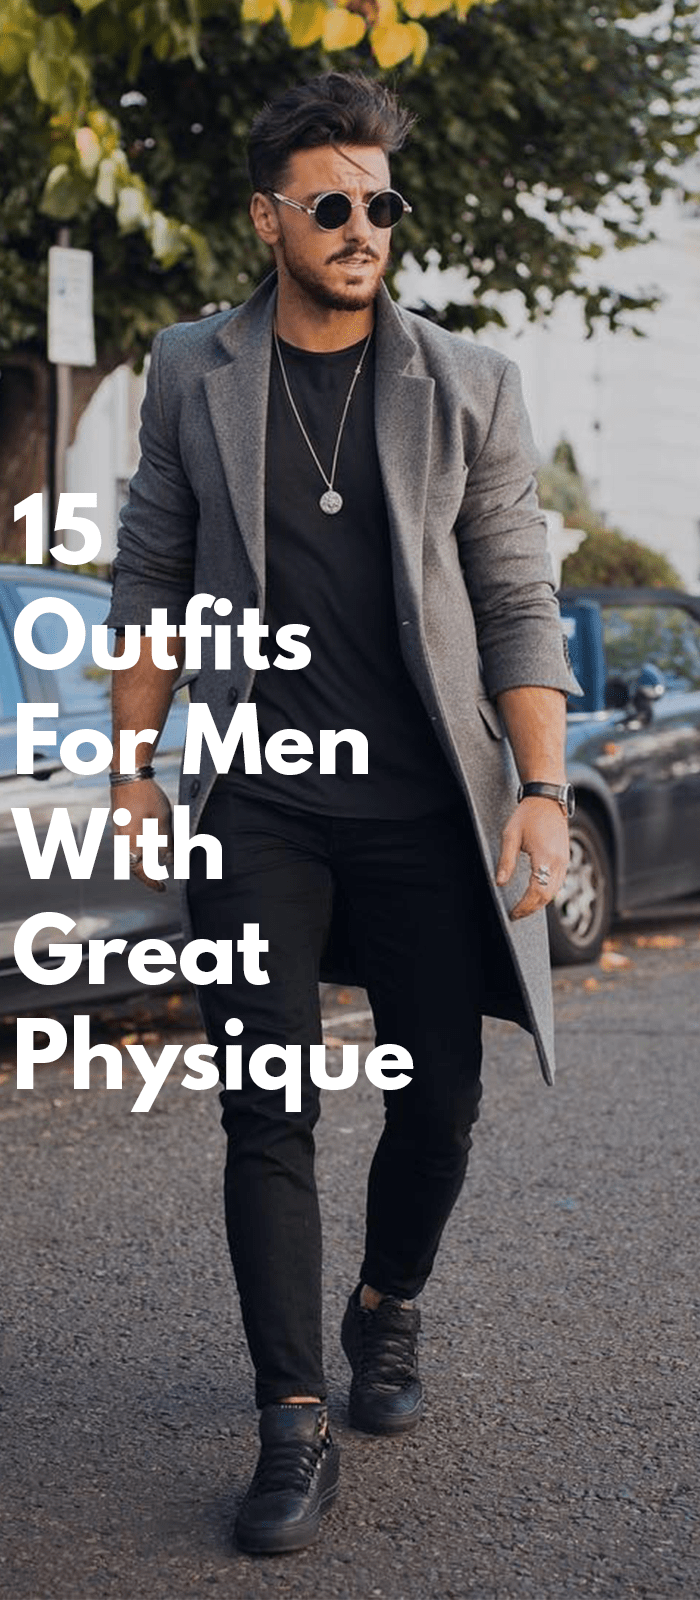 15 Outfits For Men With Great Physique!